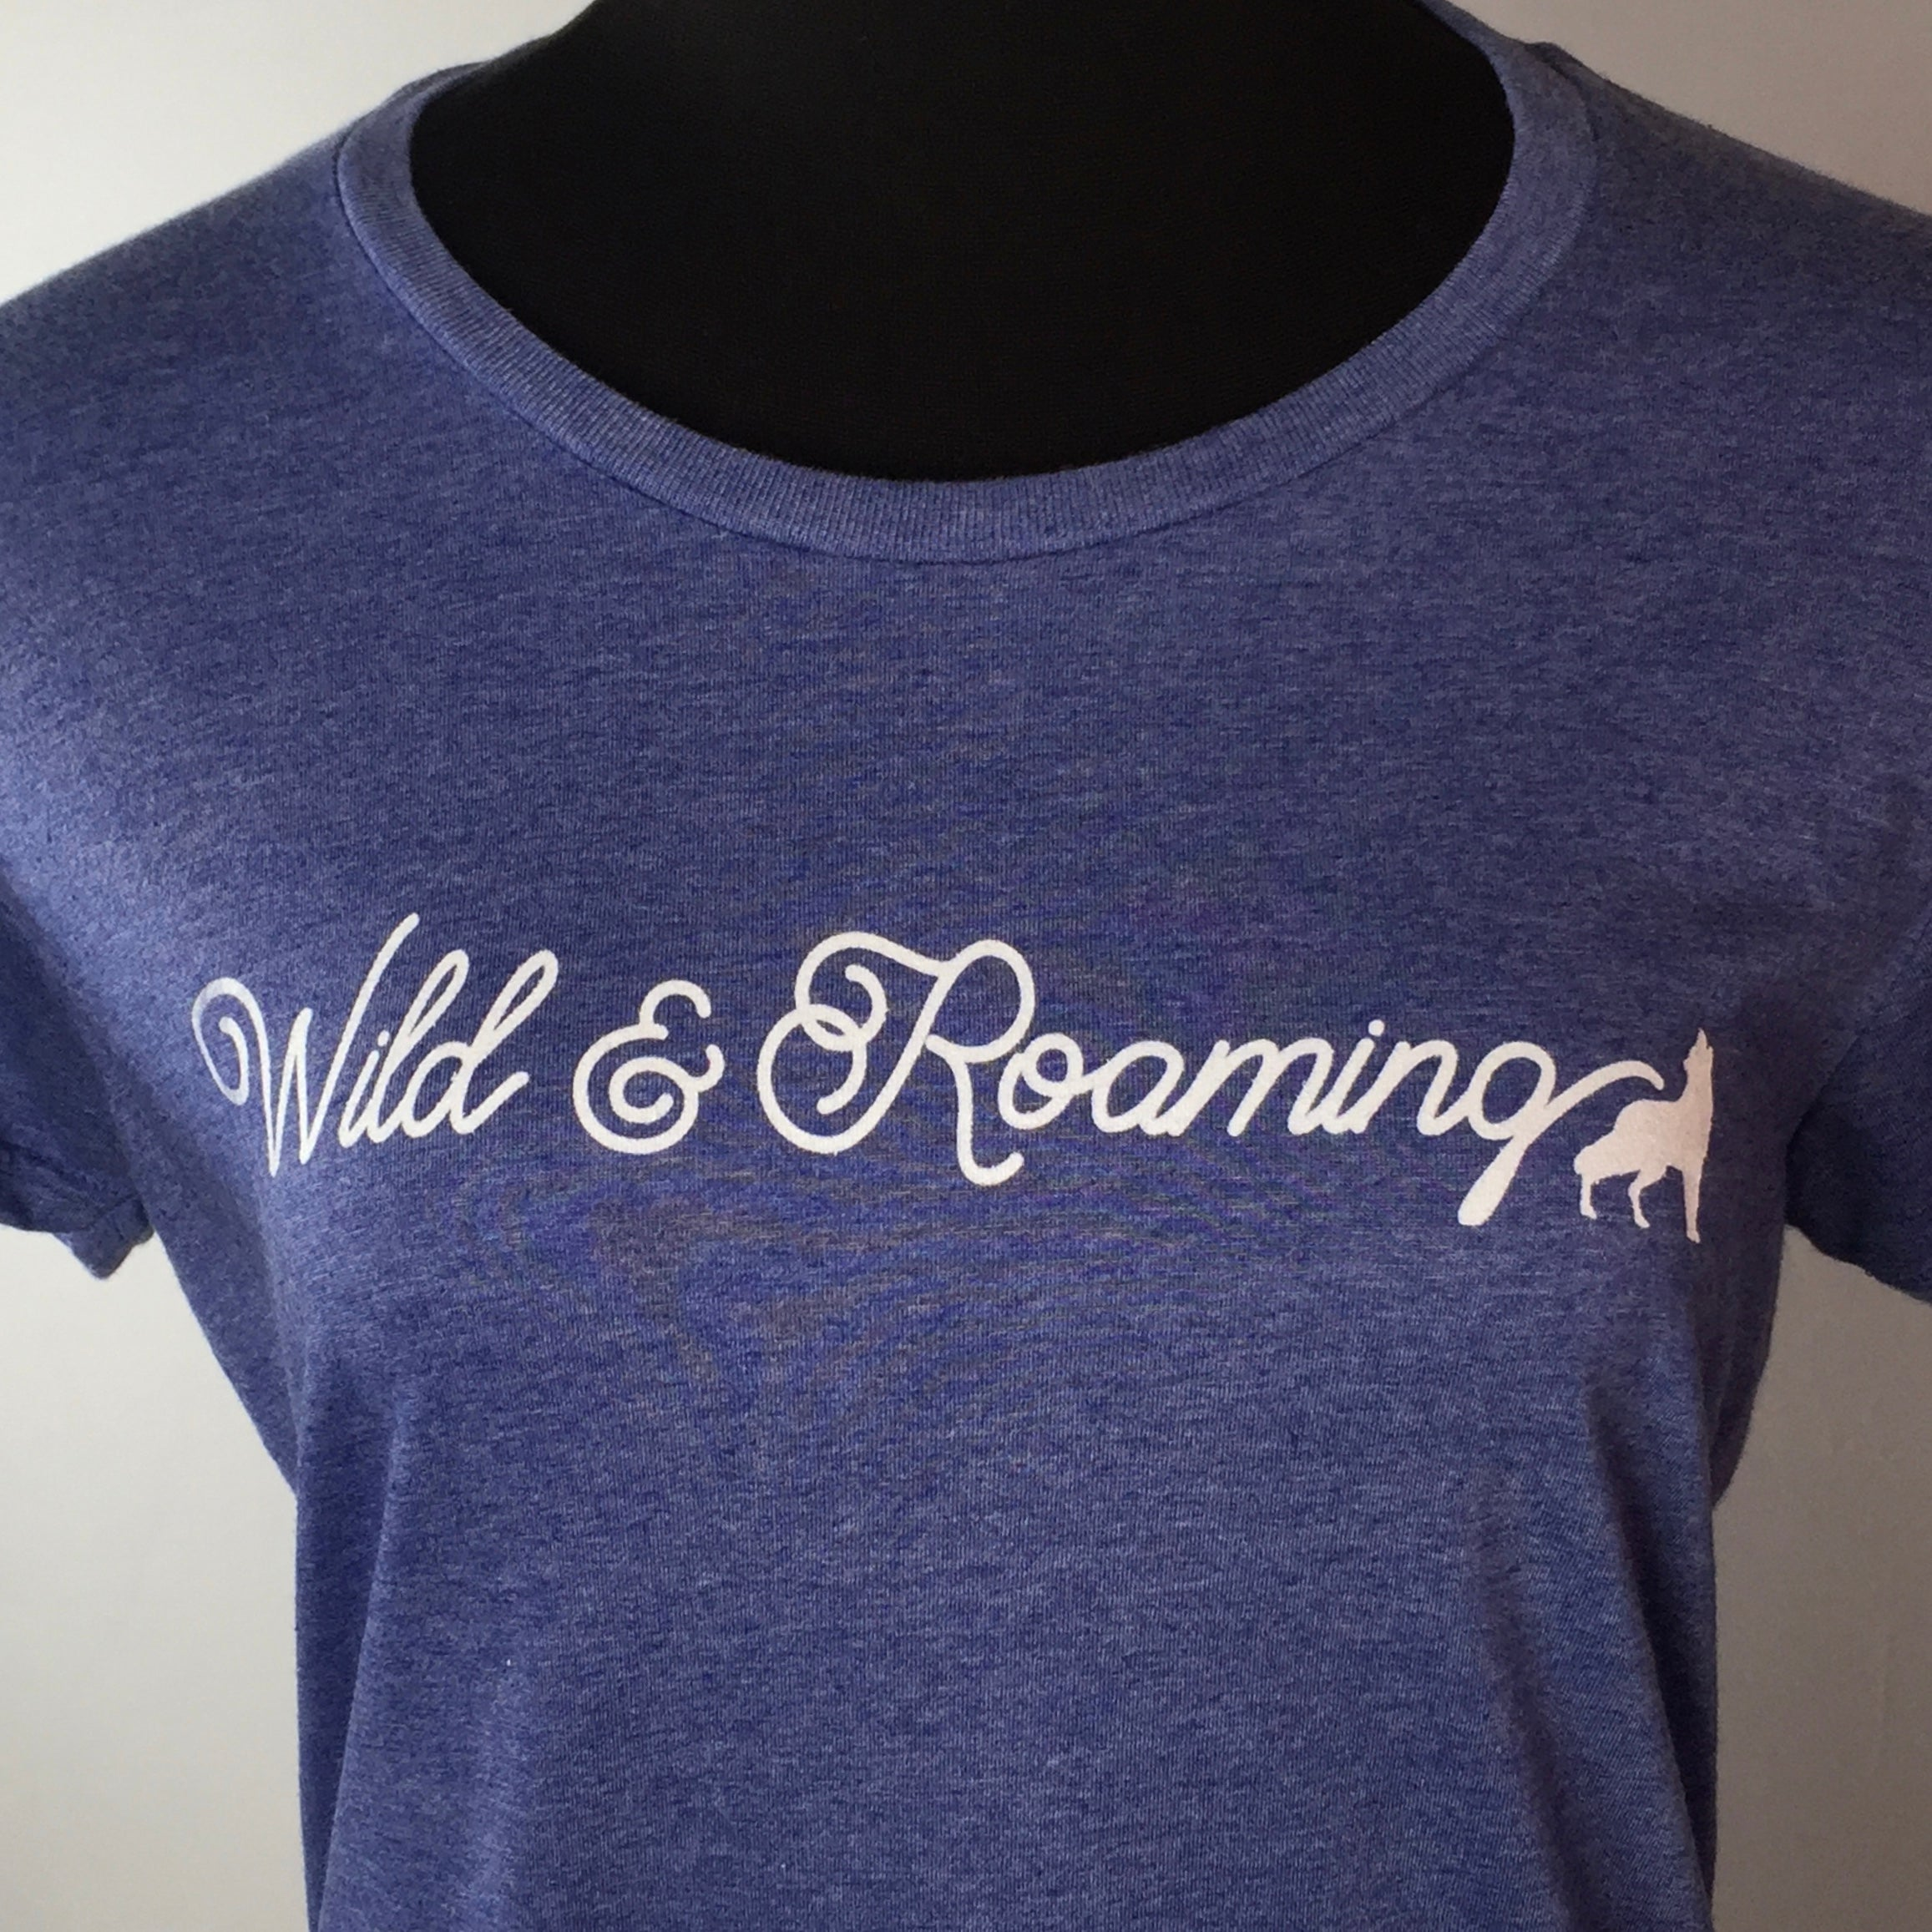 Wild & Roaming Women's Short Sleeve T-Shirt